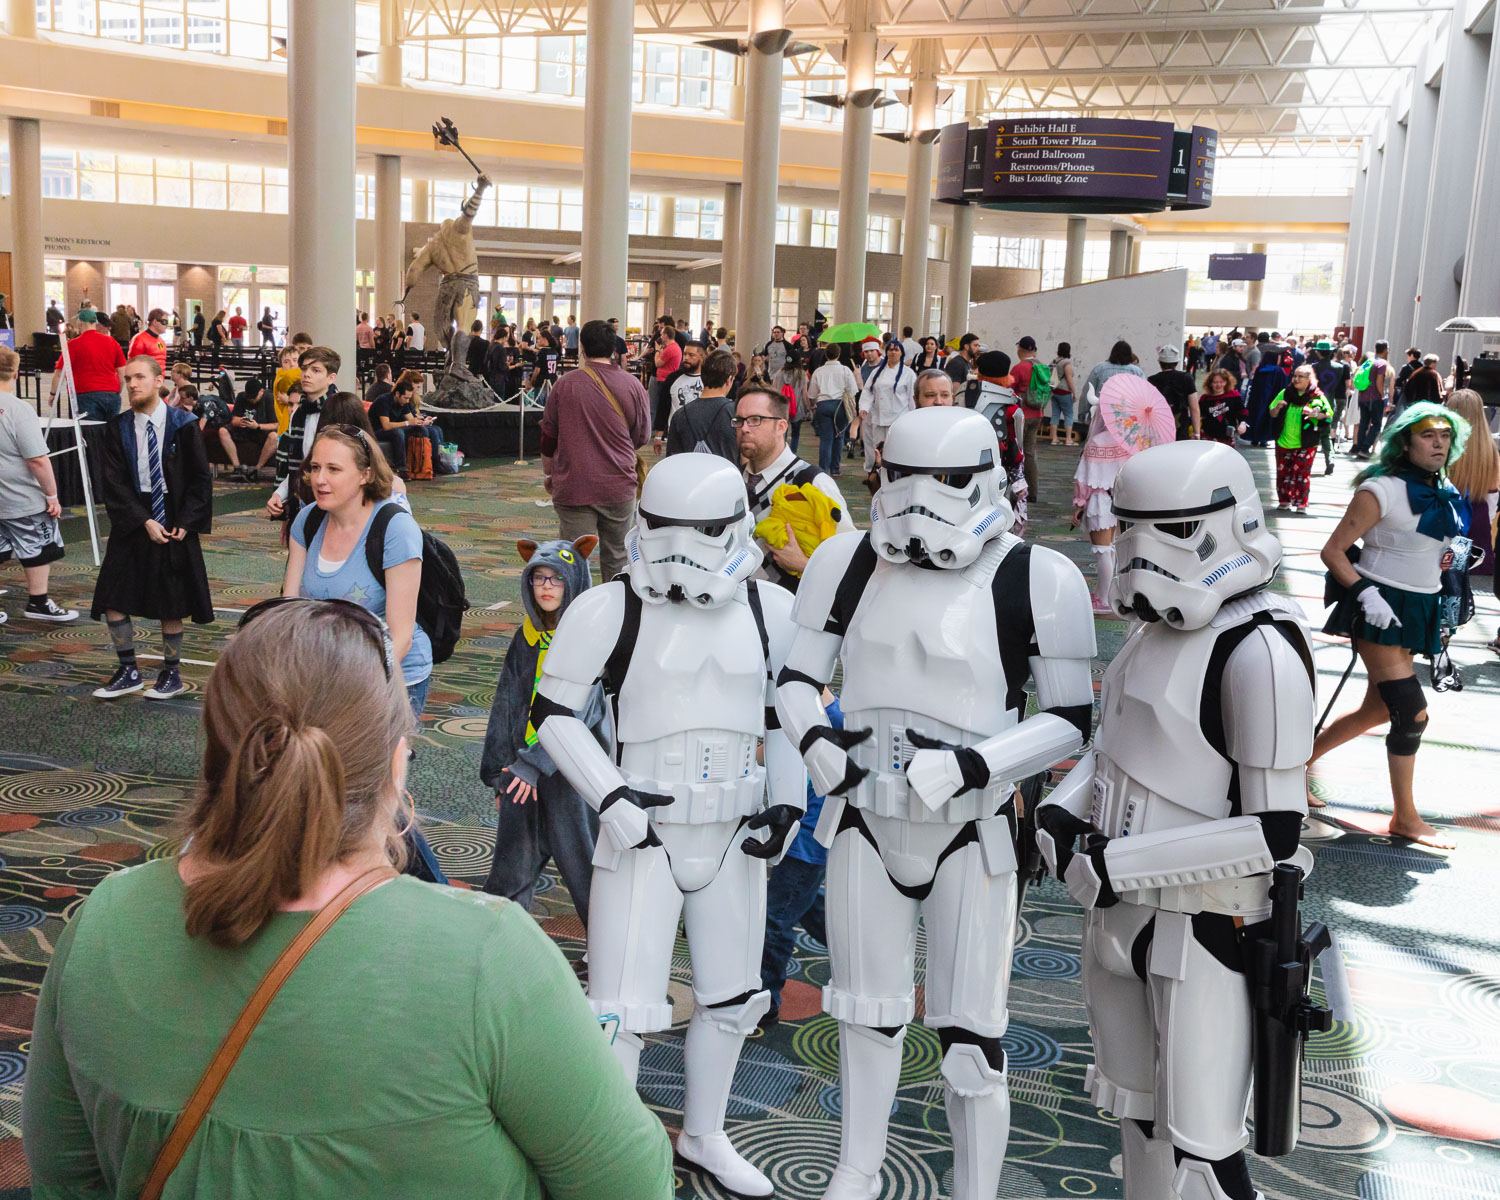 It's not a Comic Convention without a gaggle of Stormtroopers walking about. Photo: @Lmsorenson